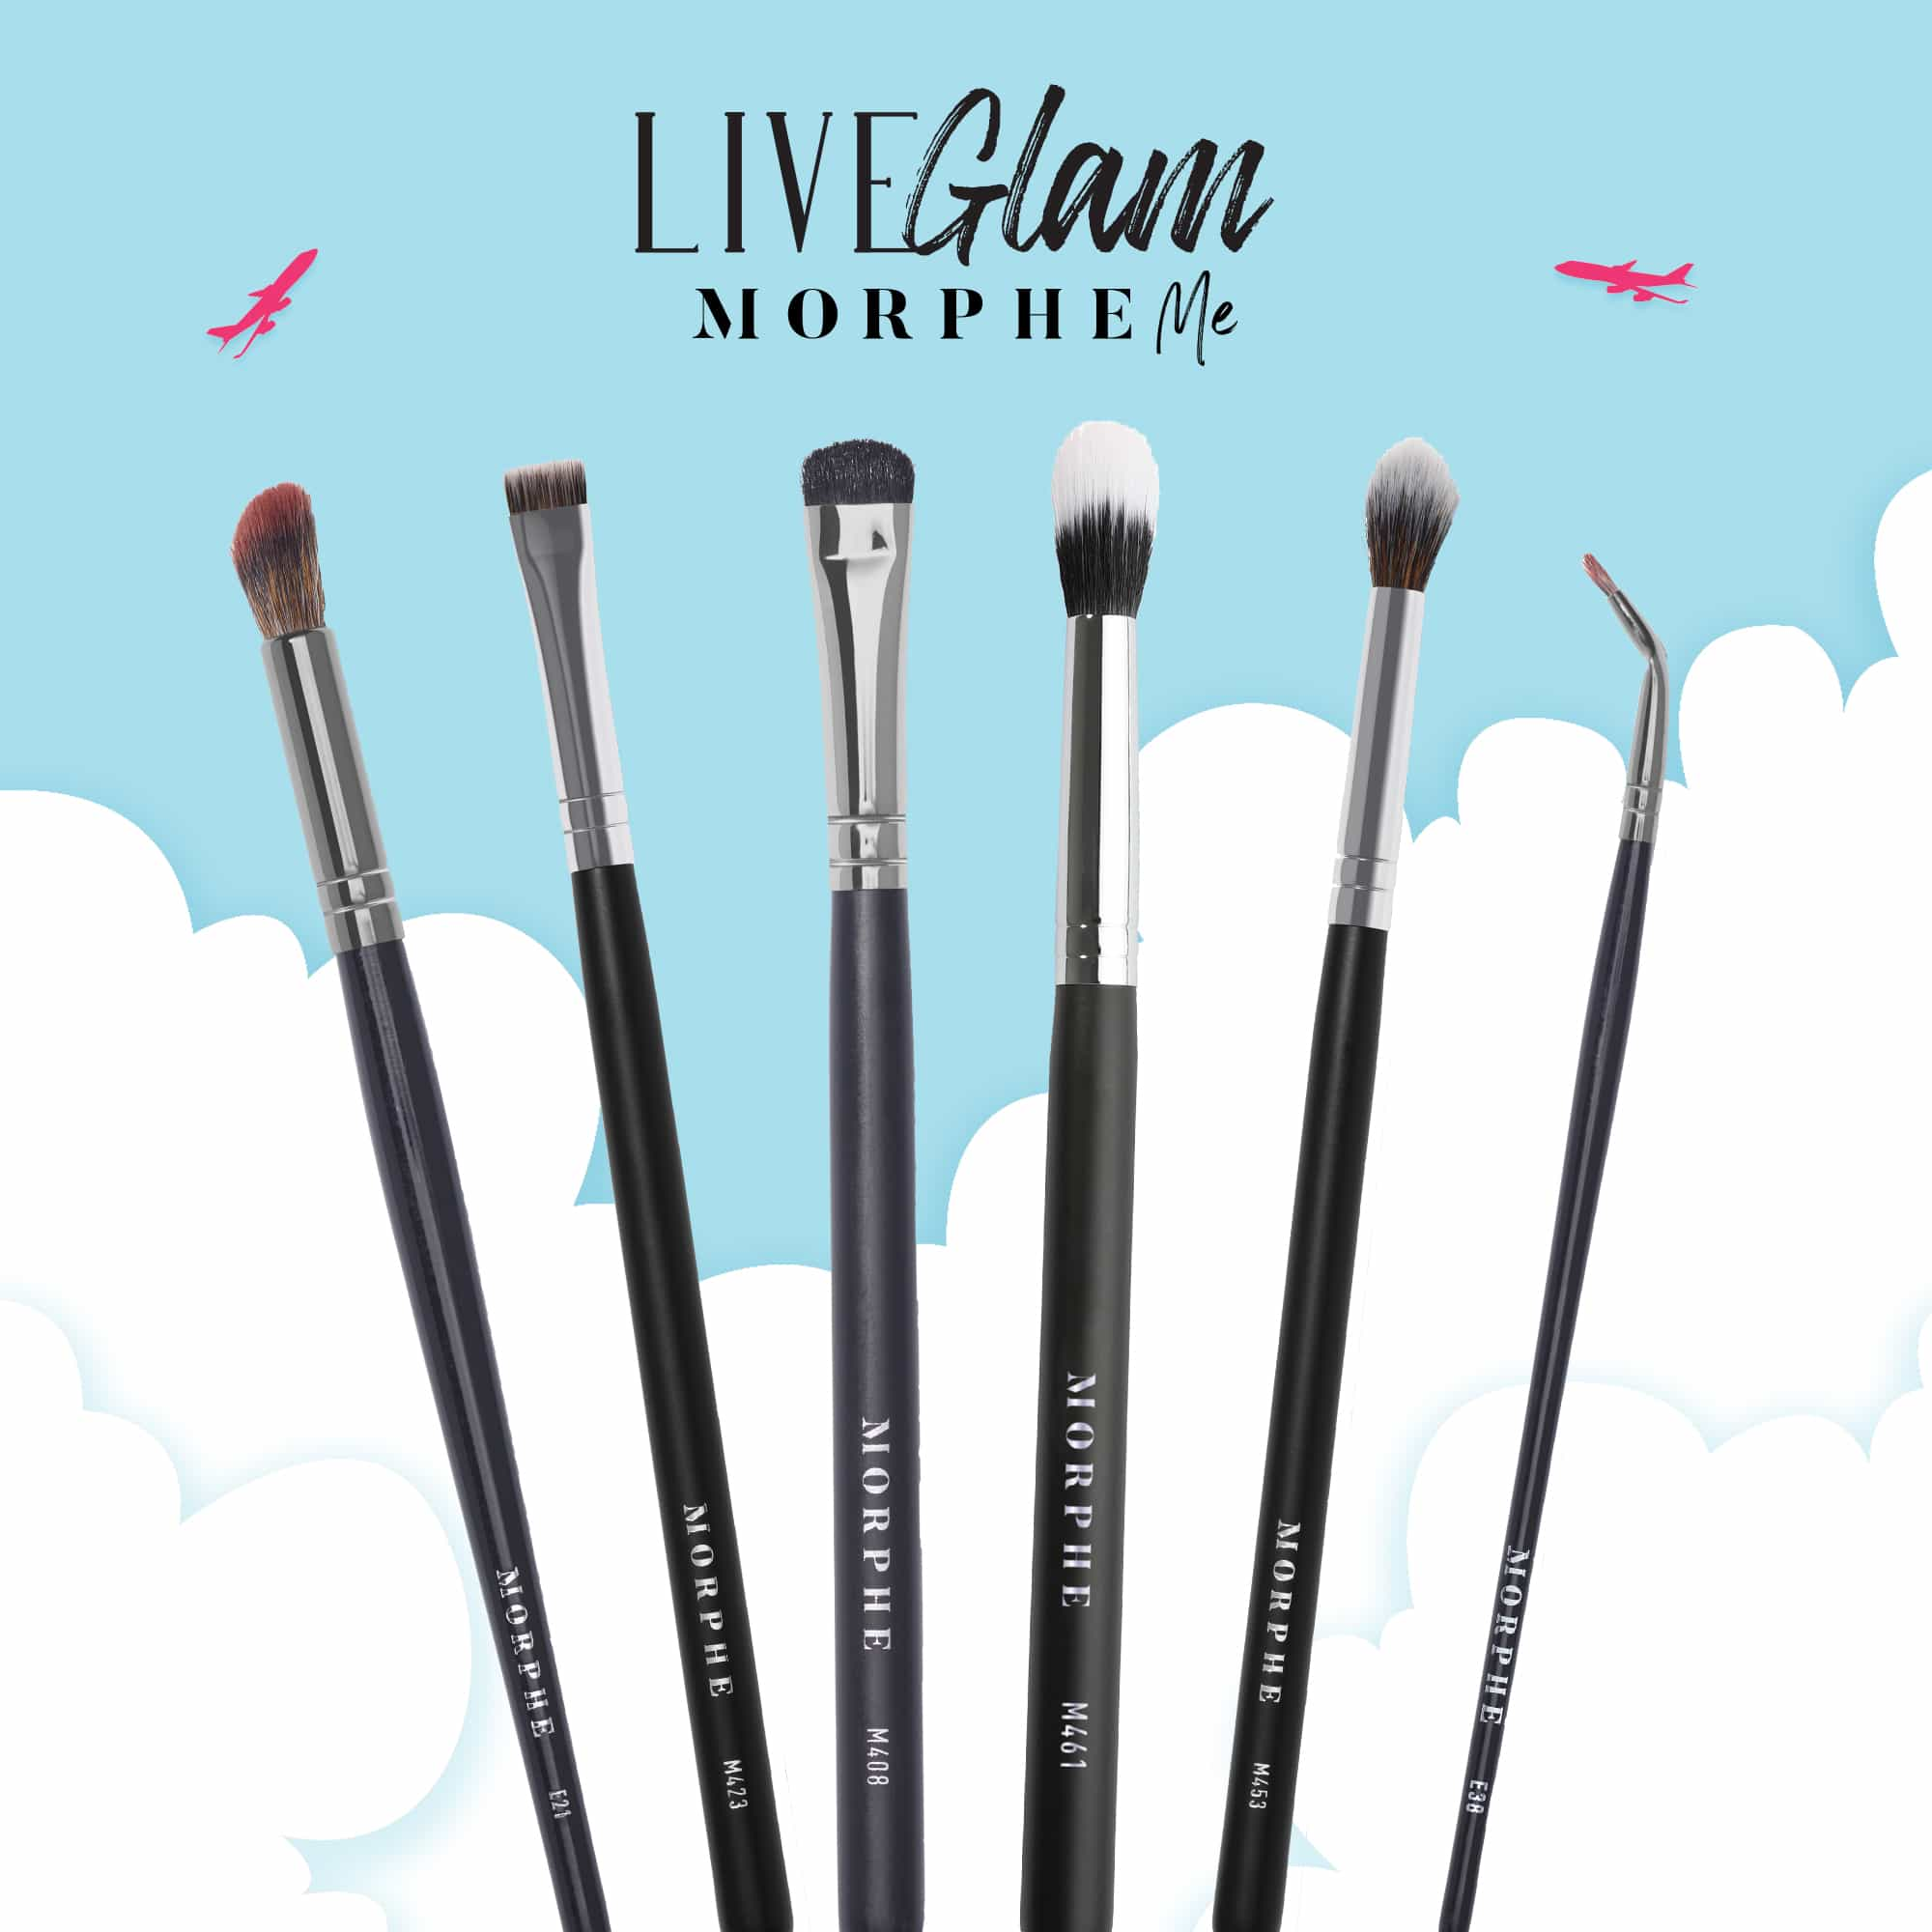 MorpheMe September 2019 Brush Club Full Spoilers + Coupon!